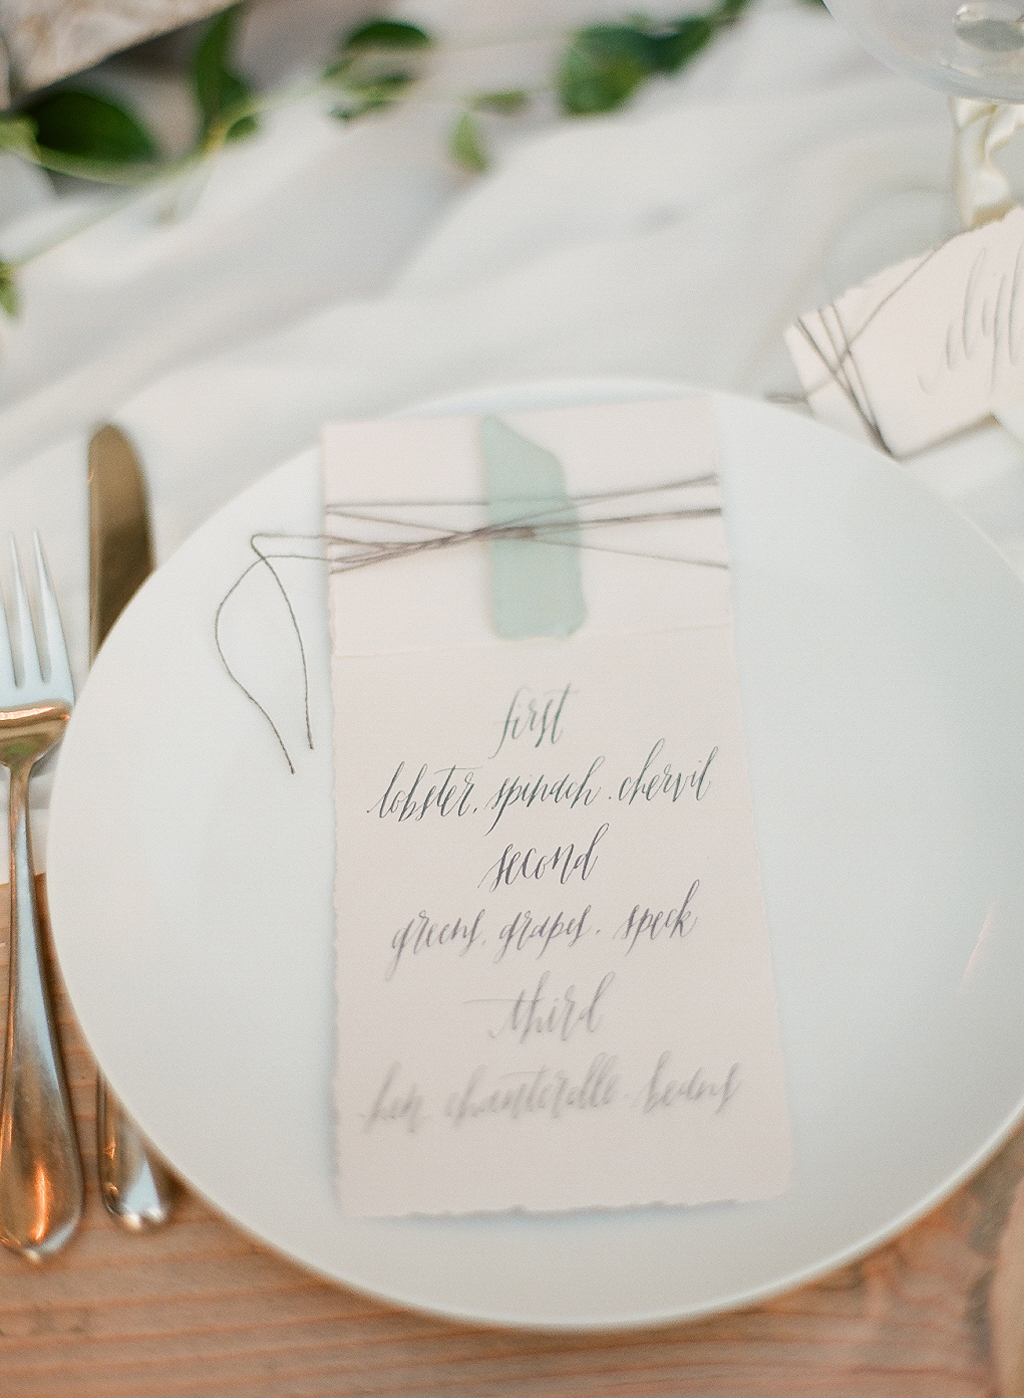 a hand calligraphed menu by Gracelineart.com and seaglass accents for this tablescape at the oregon coast wedding photographed by destination wedding photographer LExia Frank- a film photographer in portland oregon. TOP DESTINATION WEDDING PHOTOGRAPHY, OREGON COAST WEDDING, WWW DOT LEXIA FRANK DOT COM